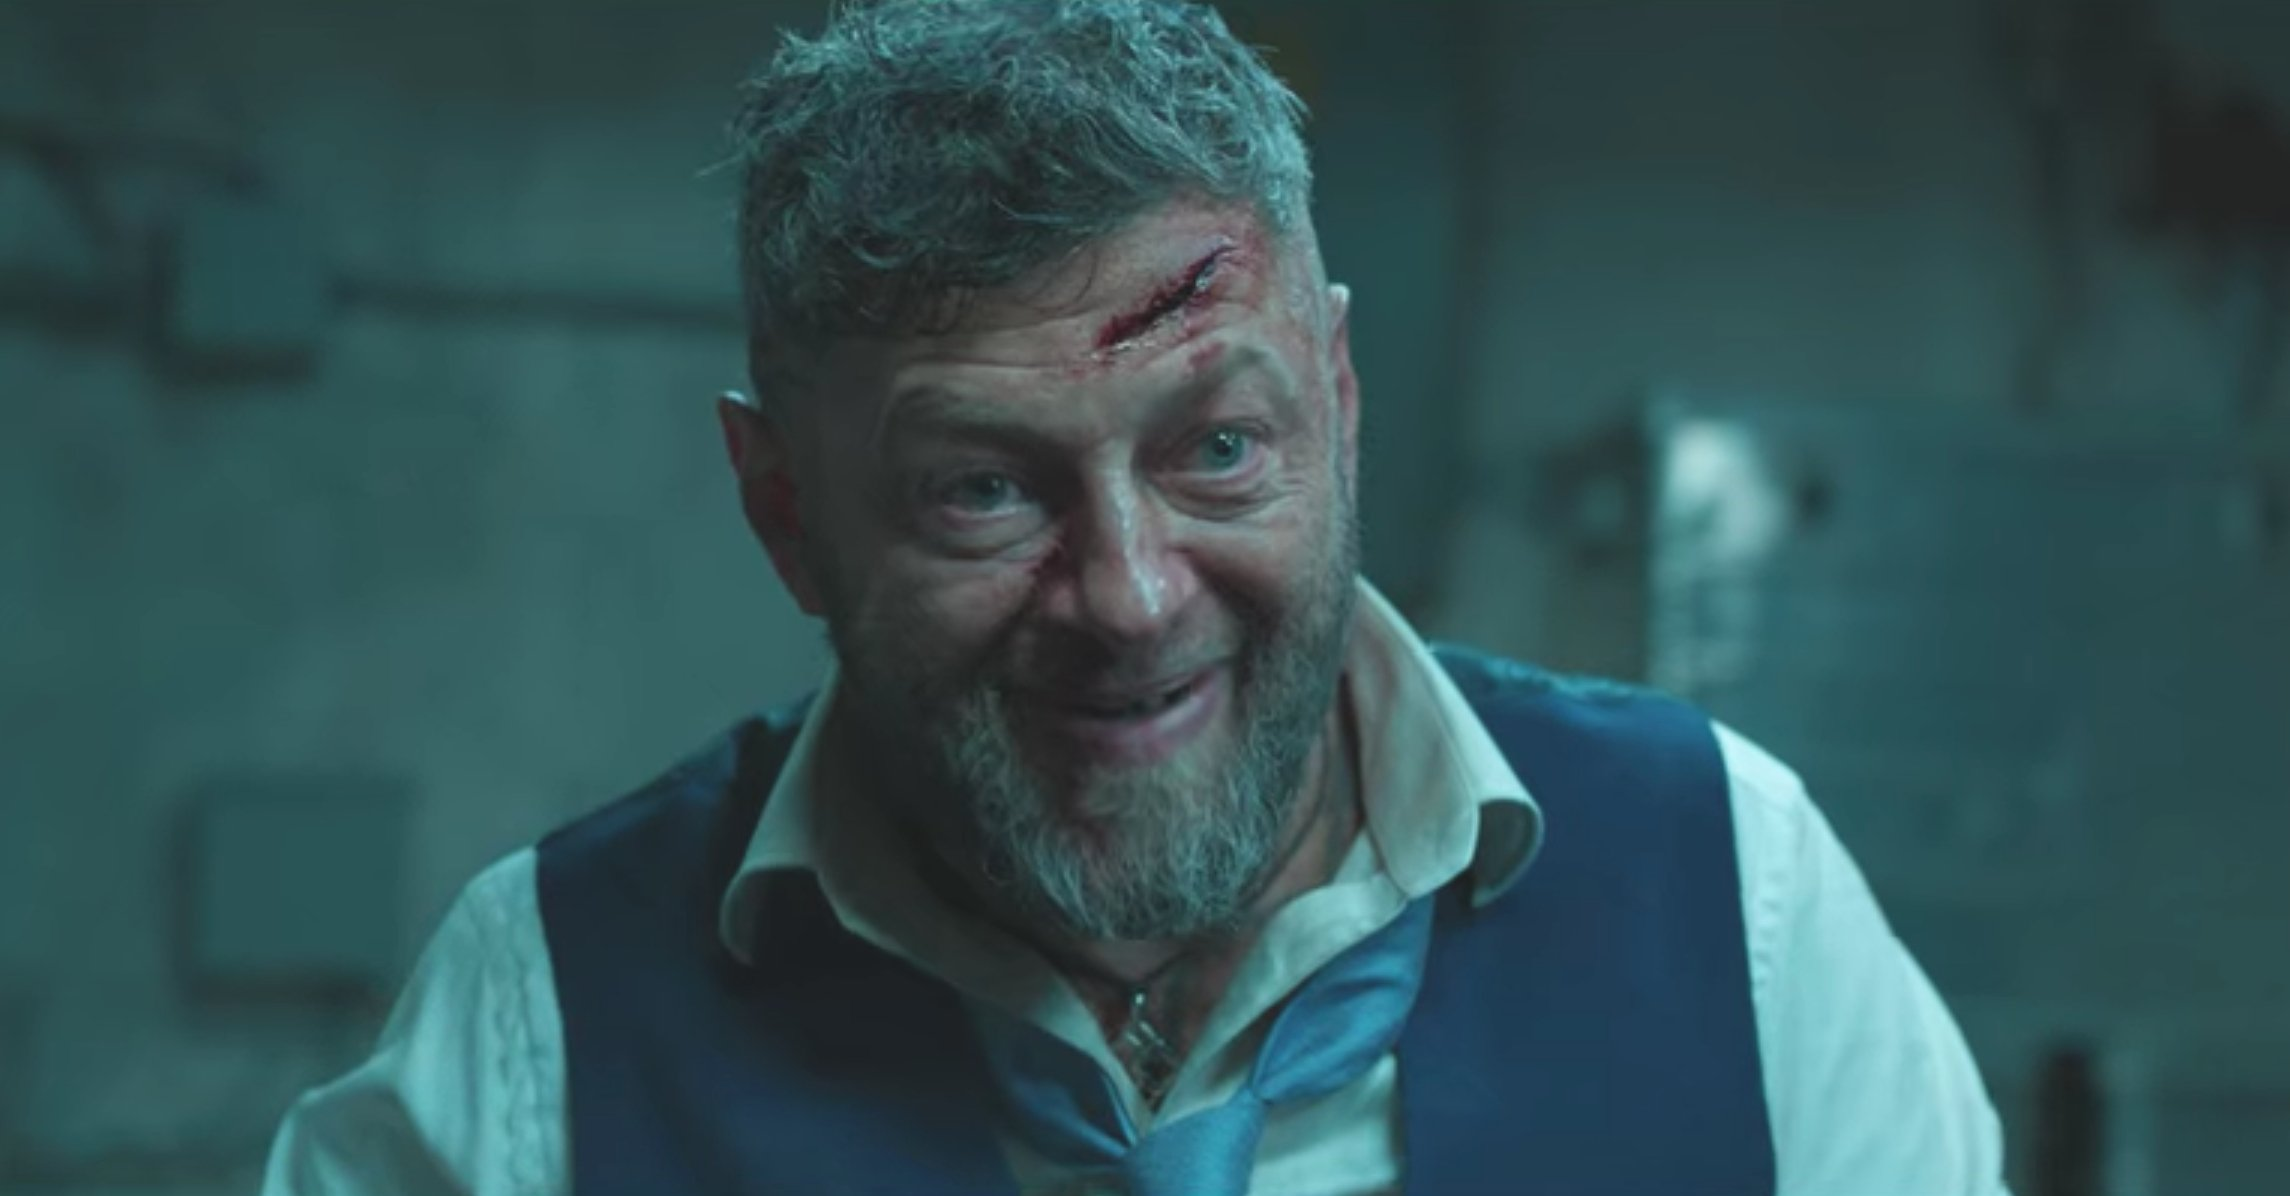 Andy Serkis stealing another scene